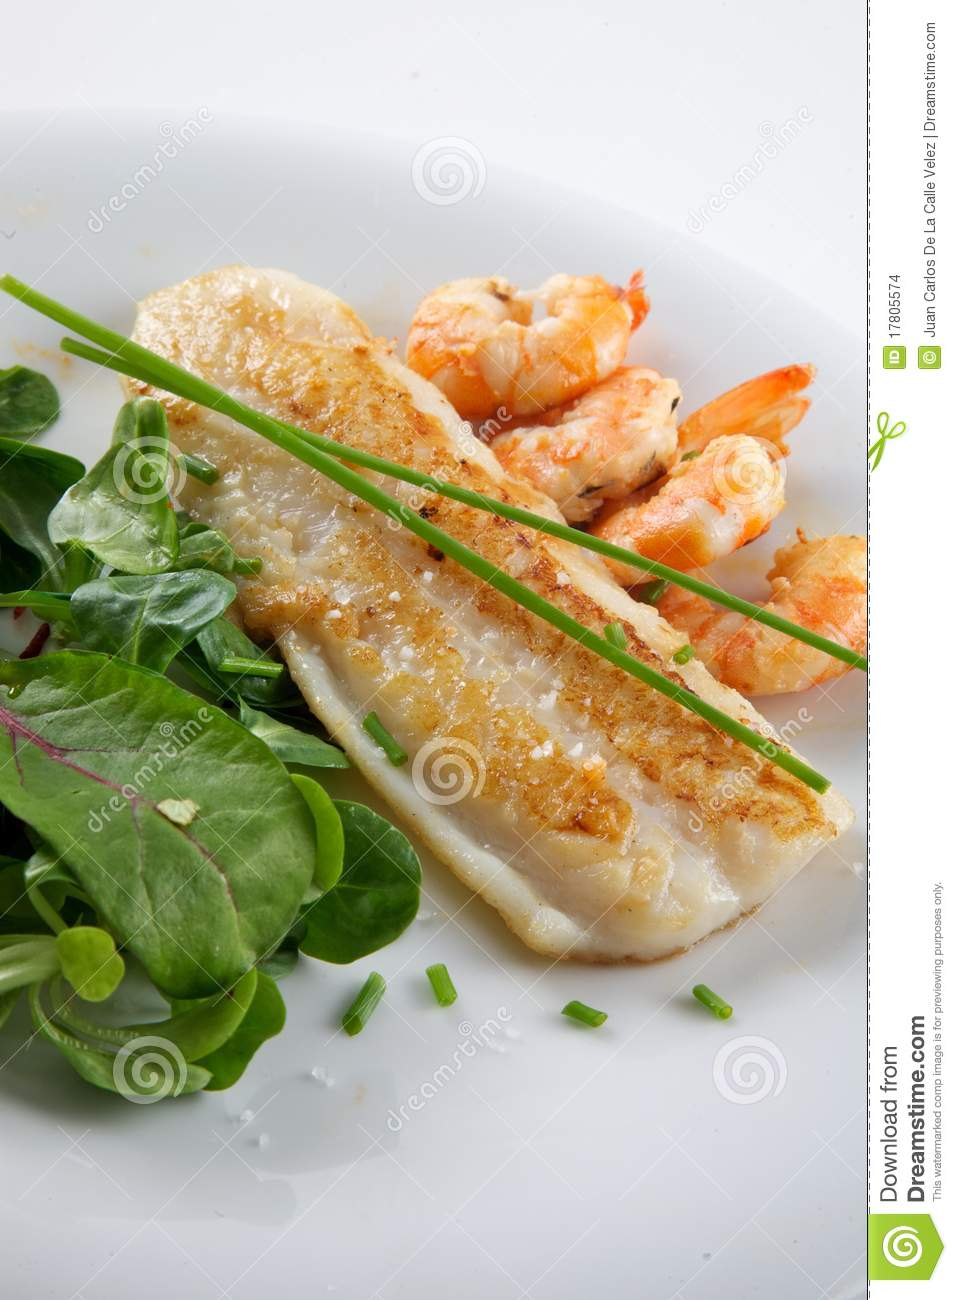 how to cook white fish fillet healthy